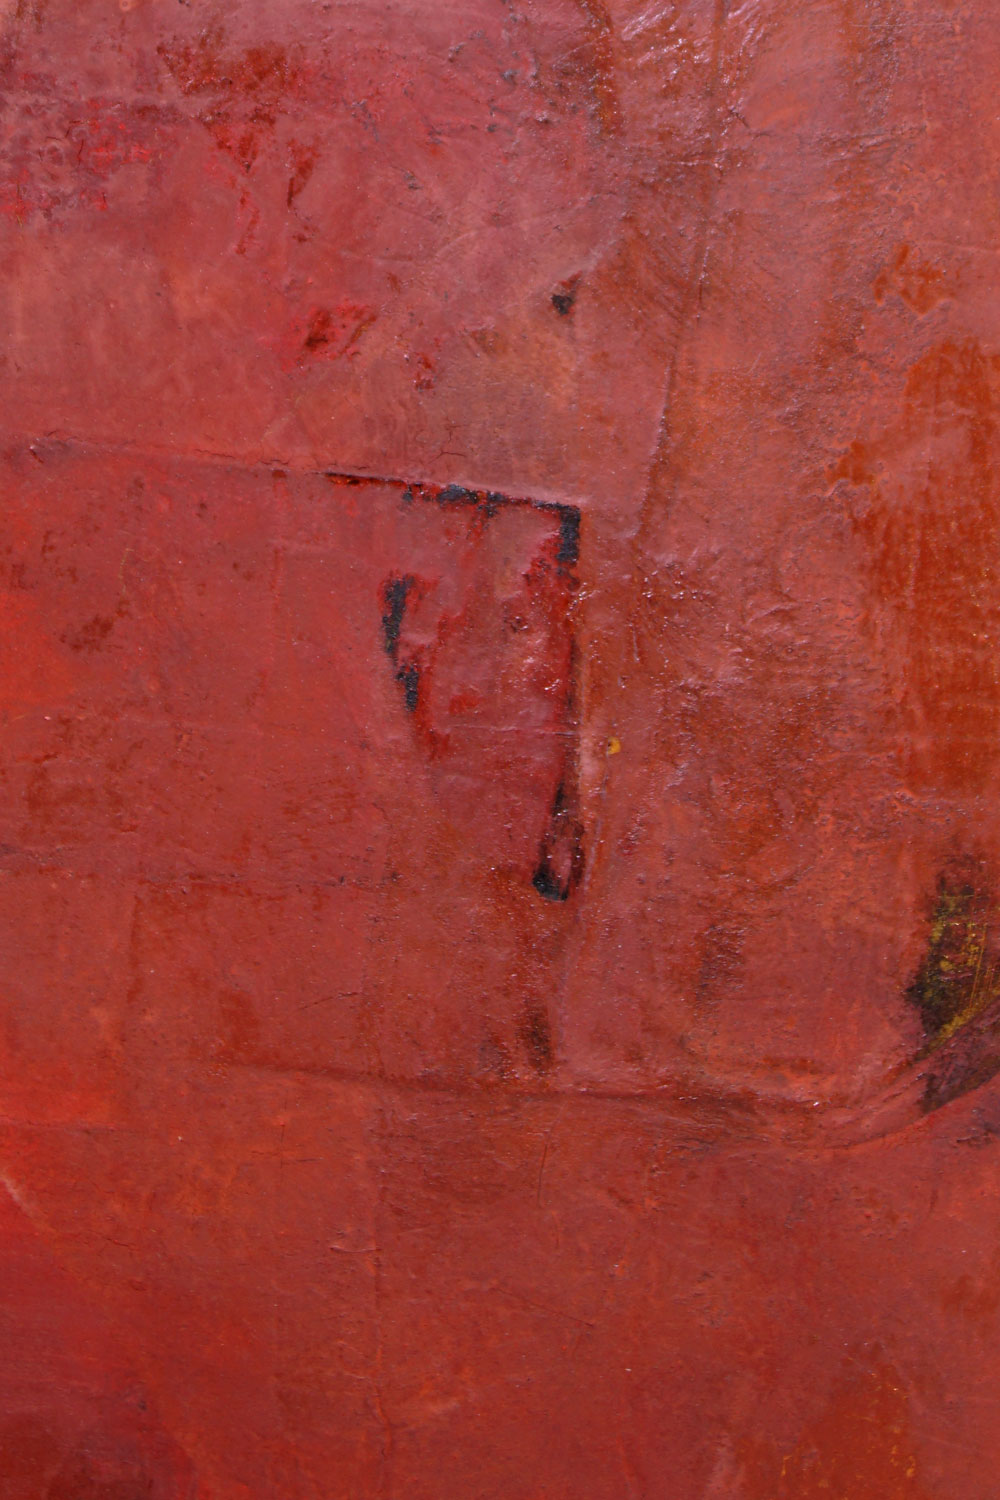 Rot-rot, Close-up, online art gallery